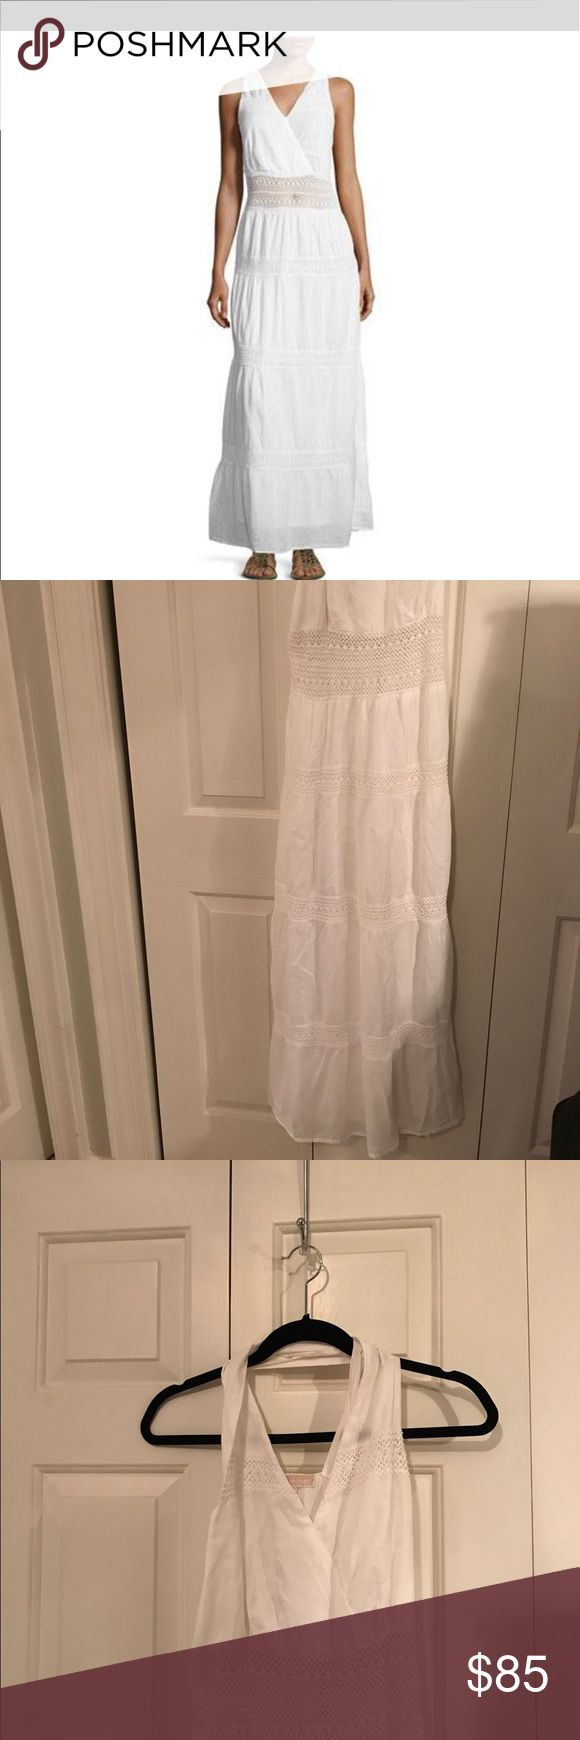 Michael.  Michael Kors white maxi dress. Not worn Flowing white maxi sundress with a slightly see through crochet mid section. MICHAEL Michael Kors Dresses Maxi